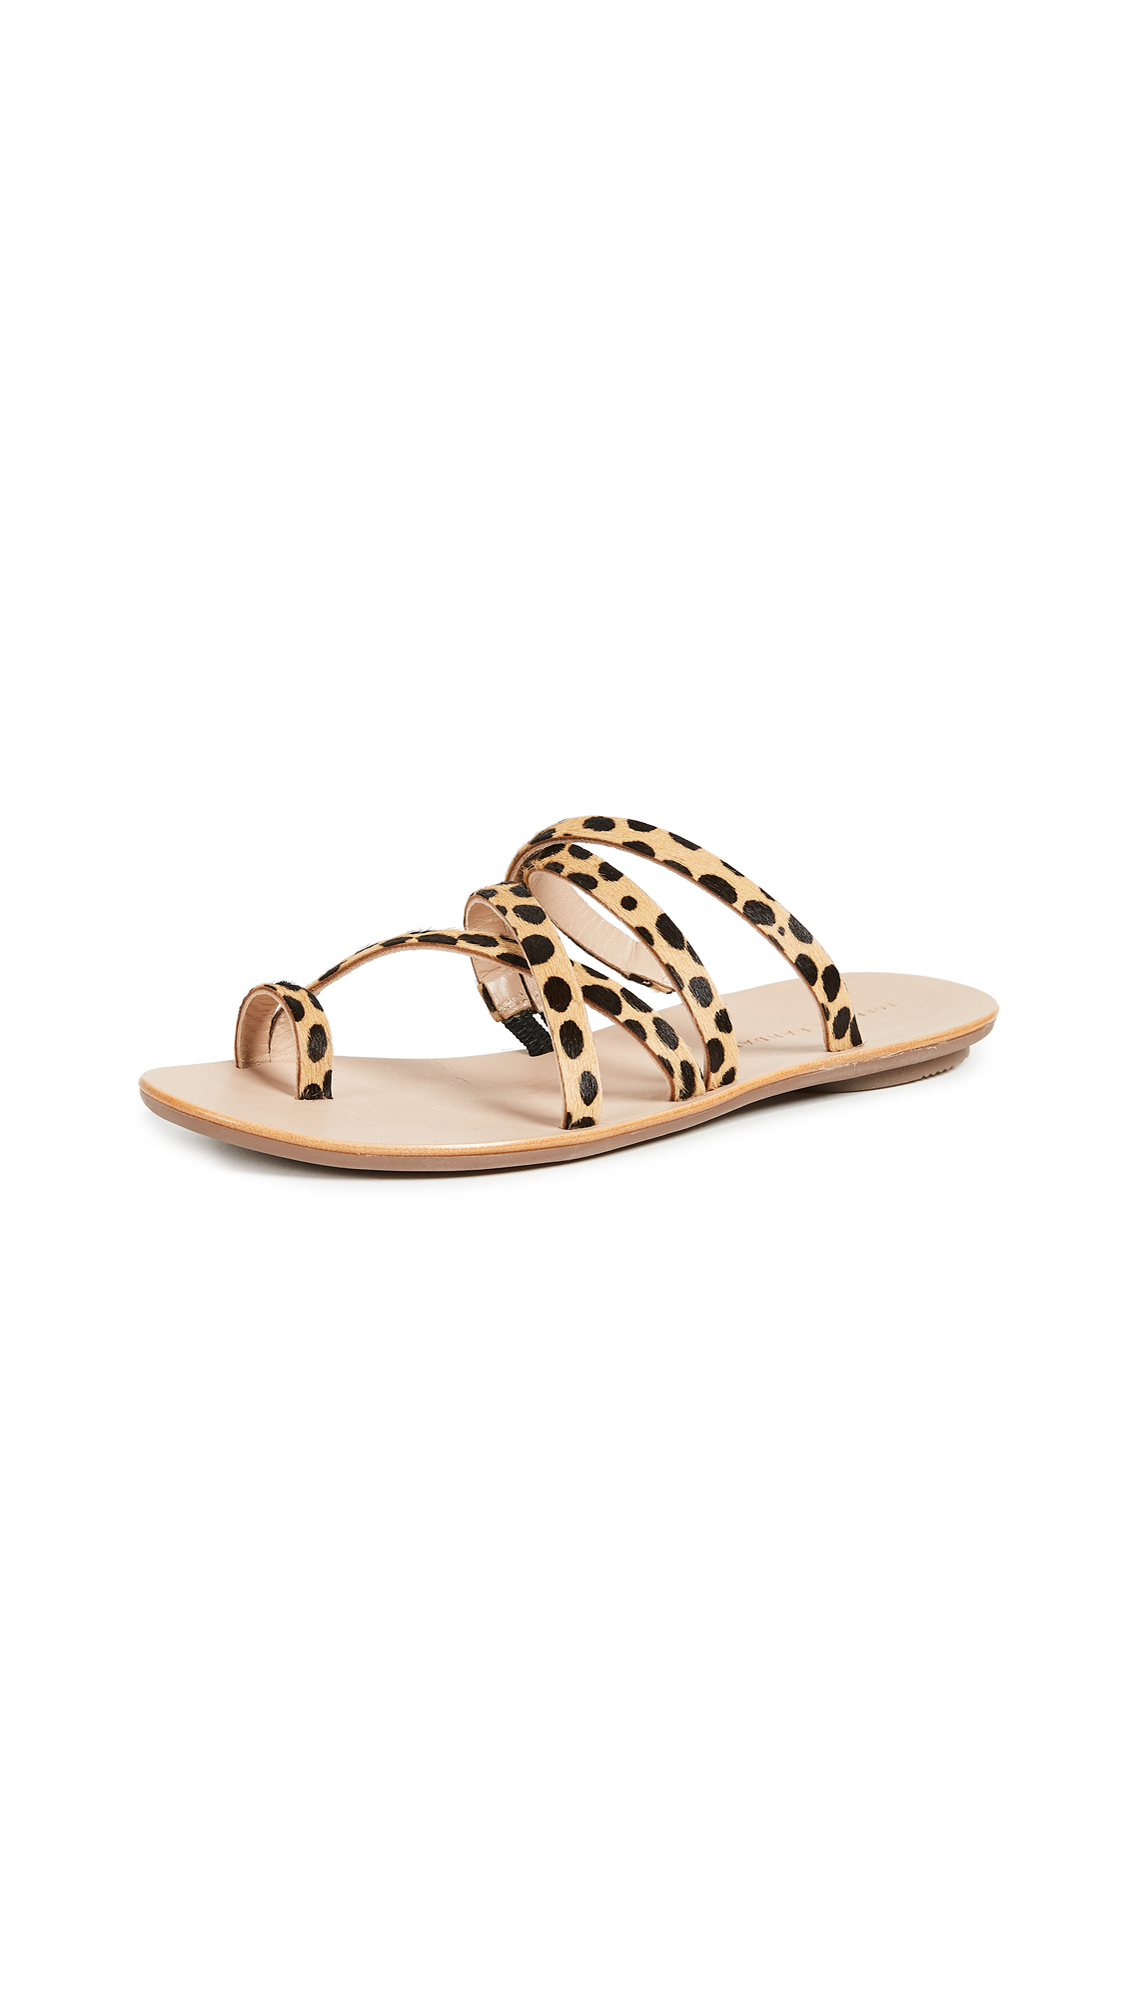 Photo of Loeffler Randall Sarie Sandals online shoes sales